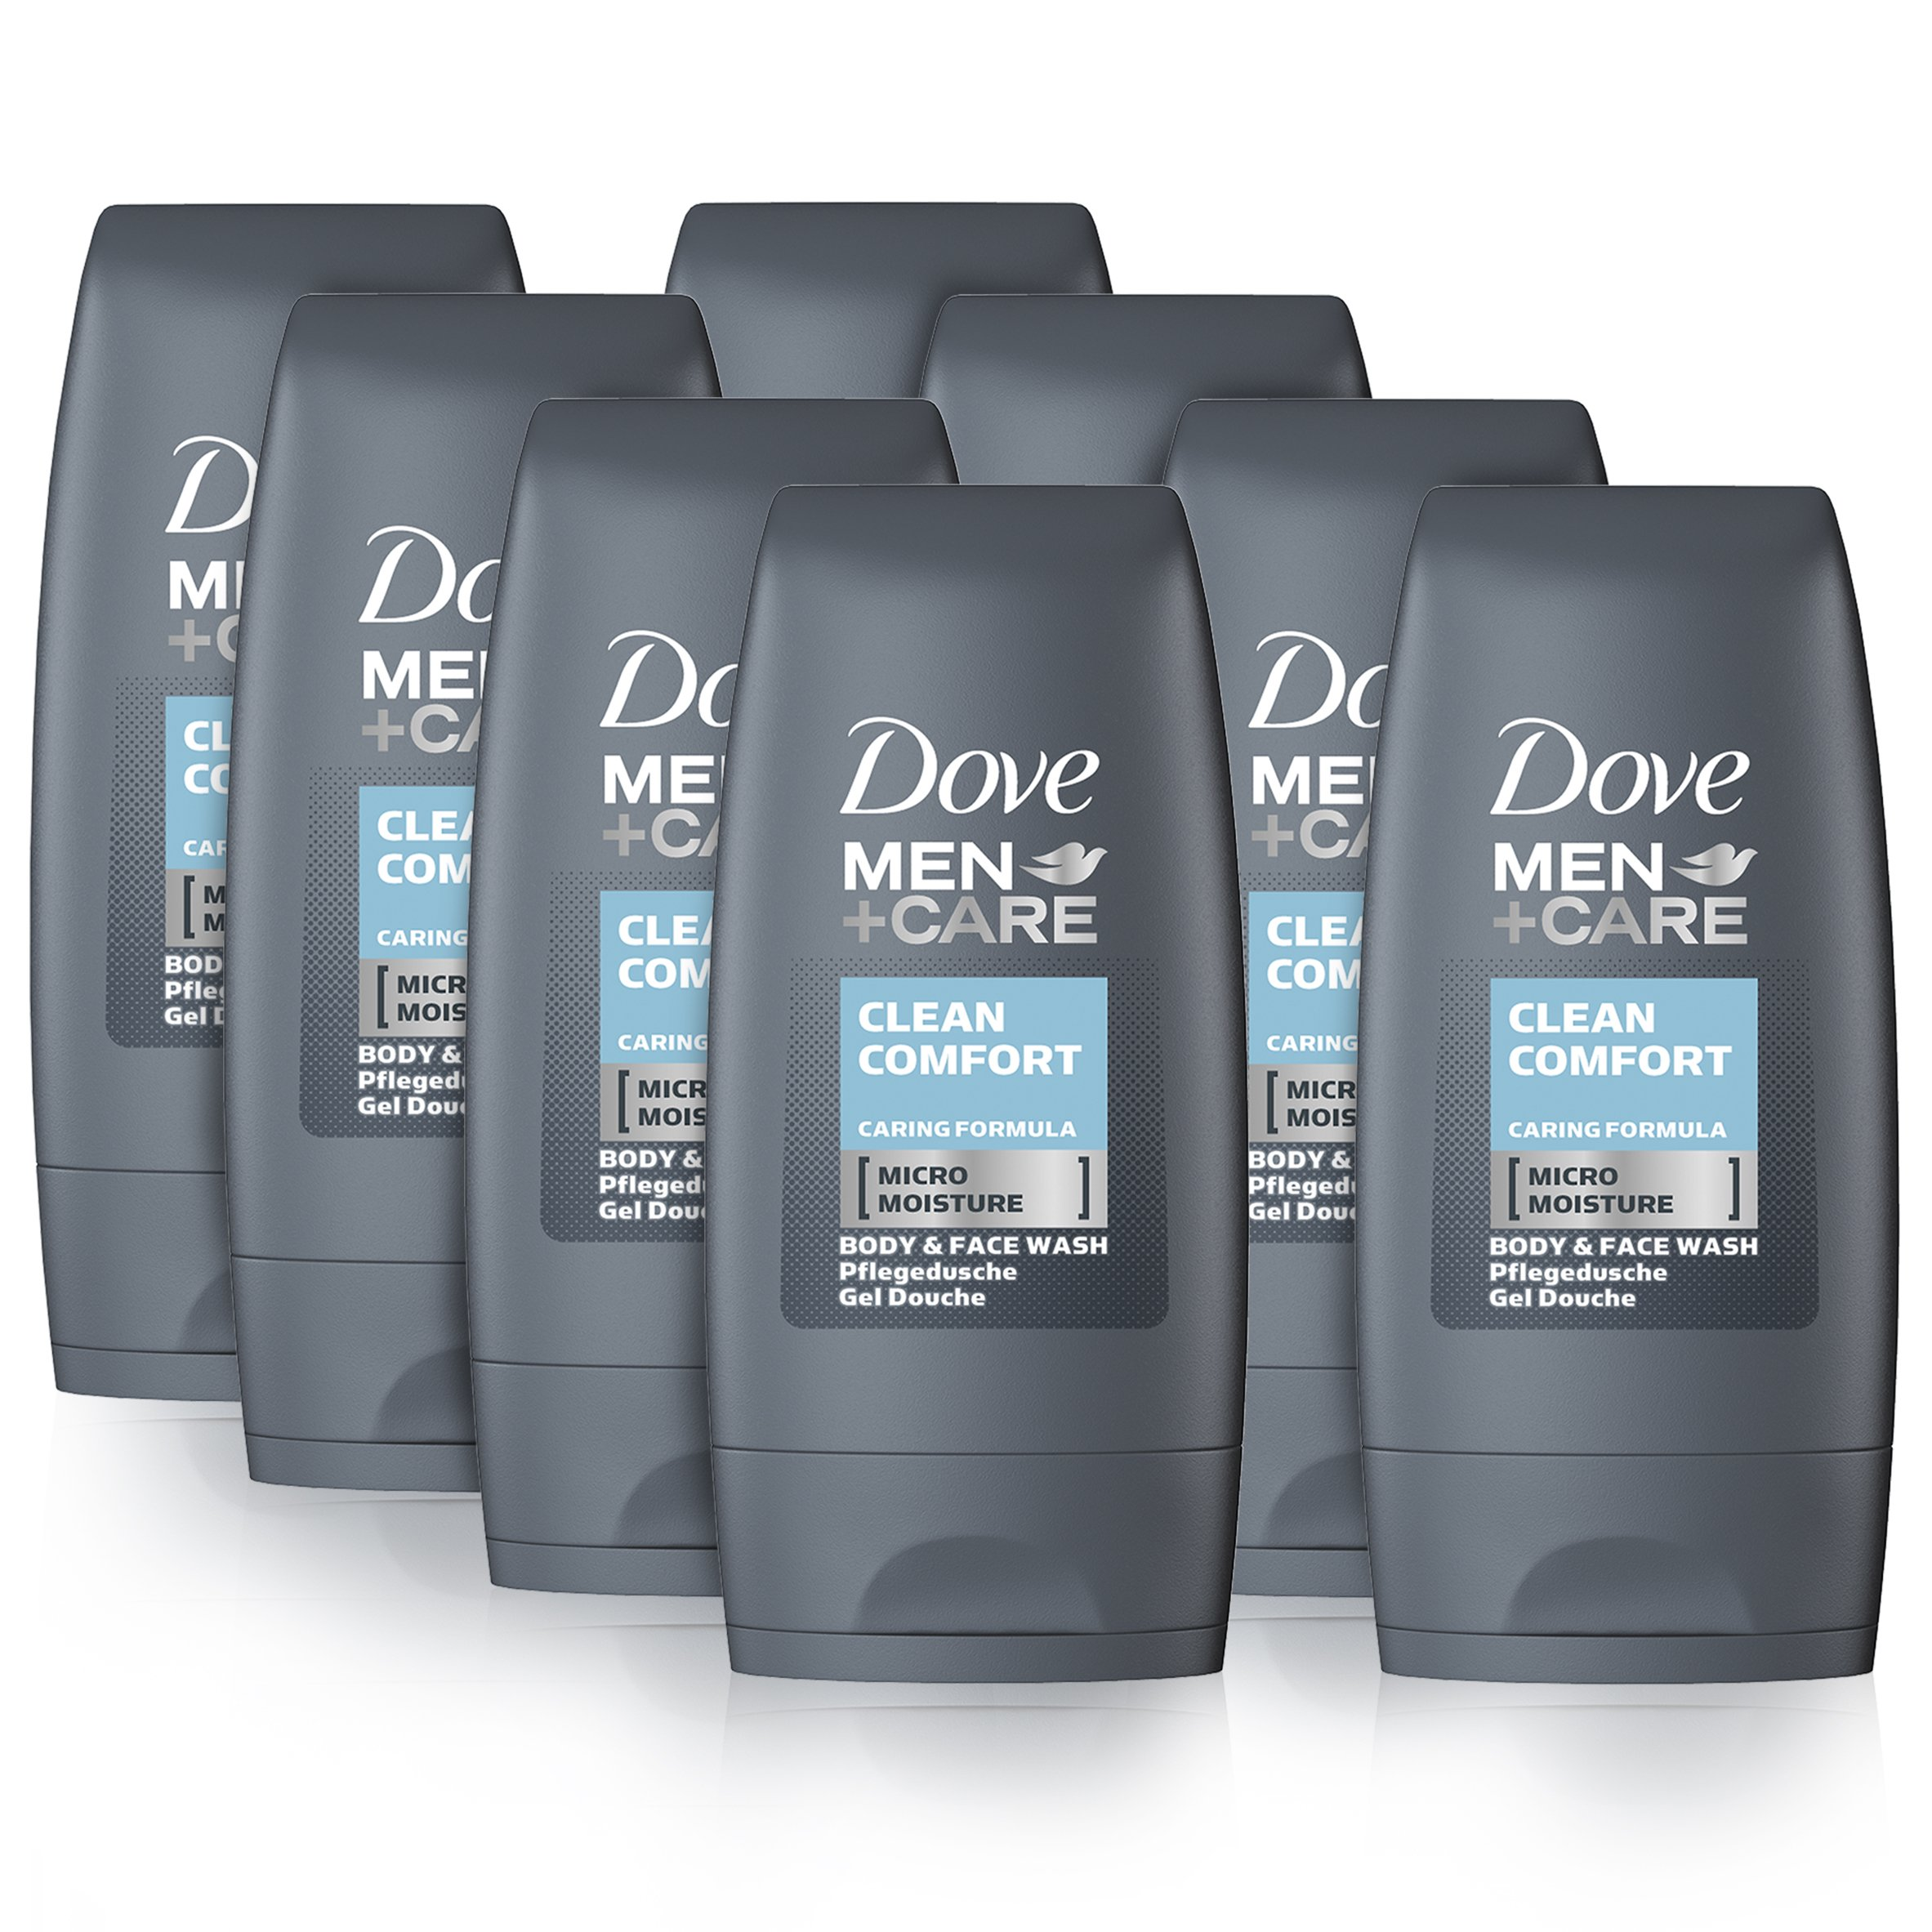 Dove Men Care Clean Comfort Body And Face Wash 55 Ml Pack Of 8 Buy Online In Cayman Islands Dove Men Care Products In Cayman Islands